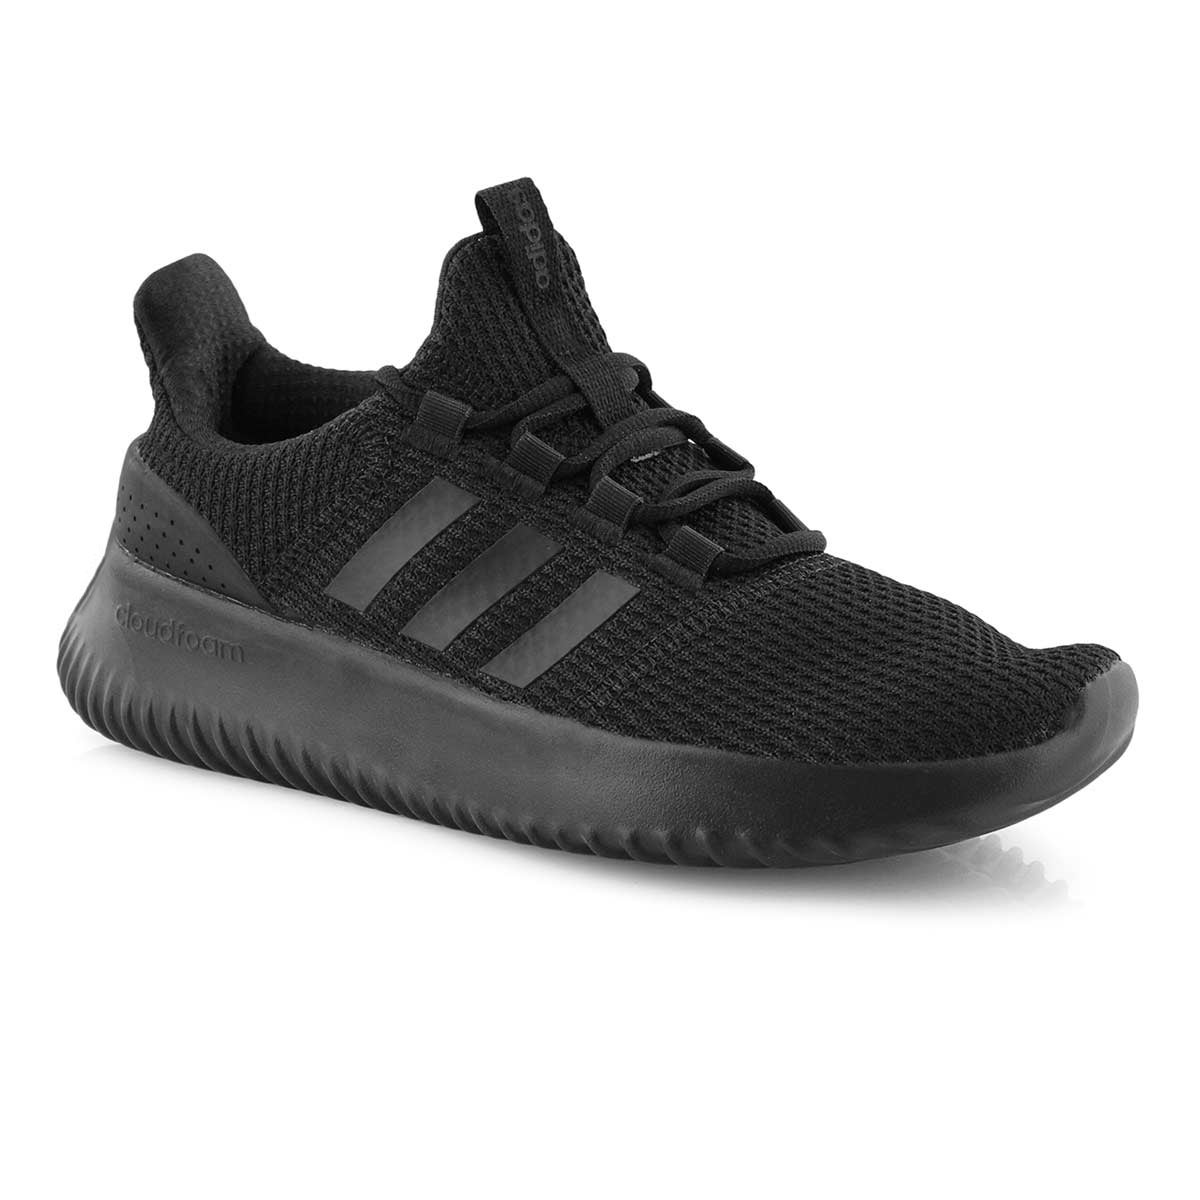 Chlds Cloudfoam Ultimate blk/blk sneaker